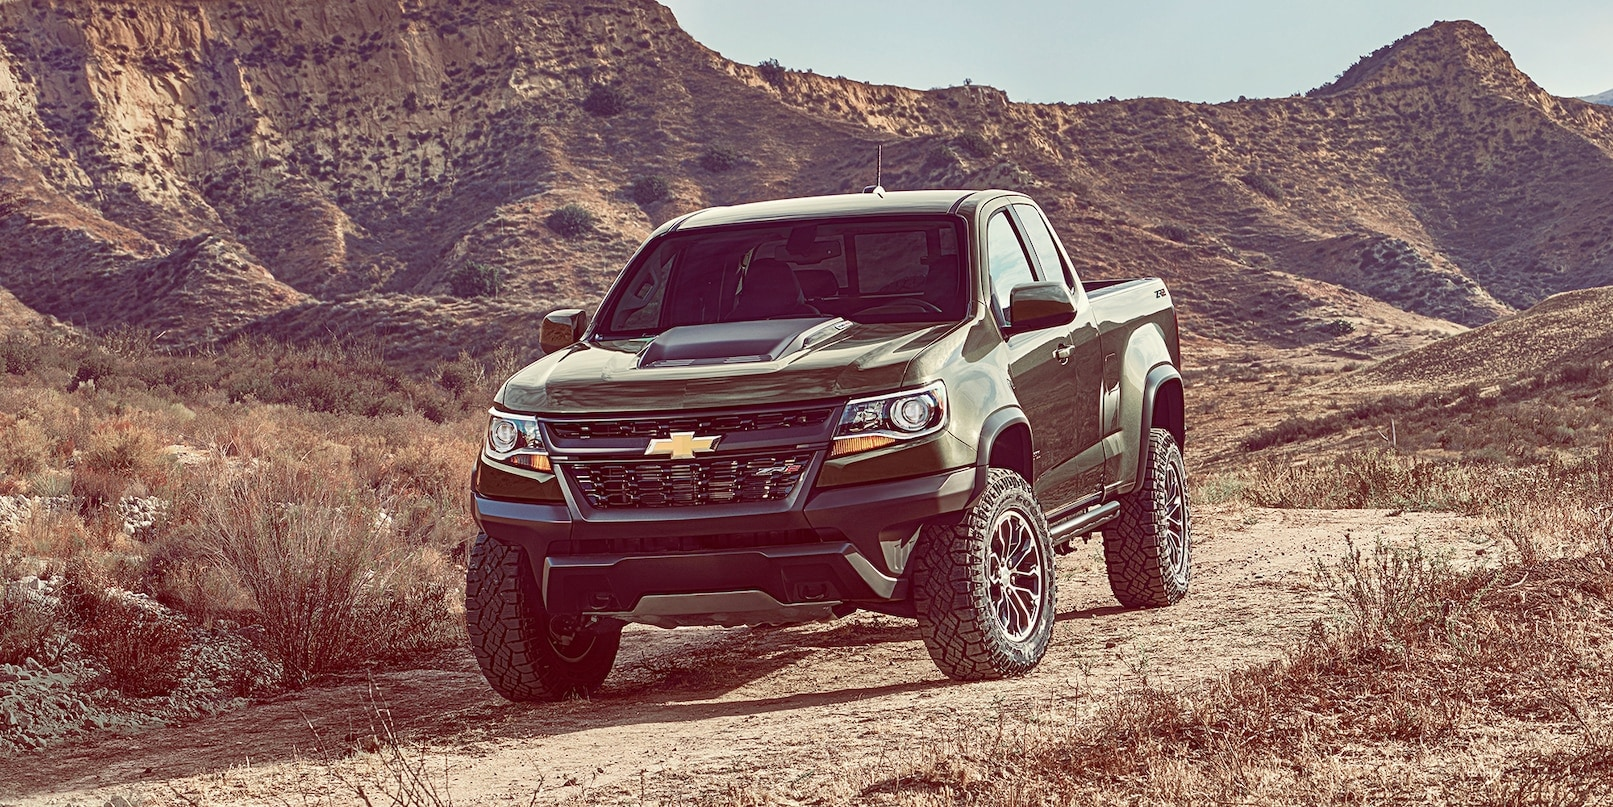 Chevy Lease Specials >> 2019 Chevy Colorado Lease Deals | At Muzi Chevy serving ...